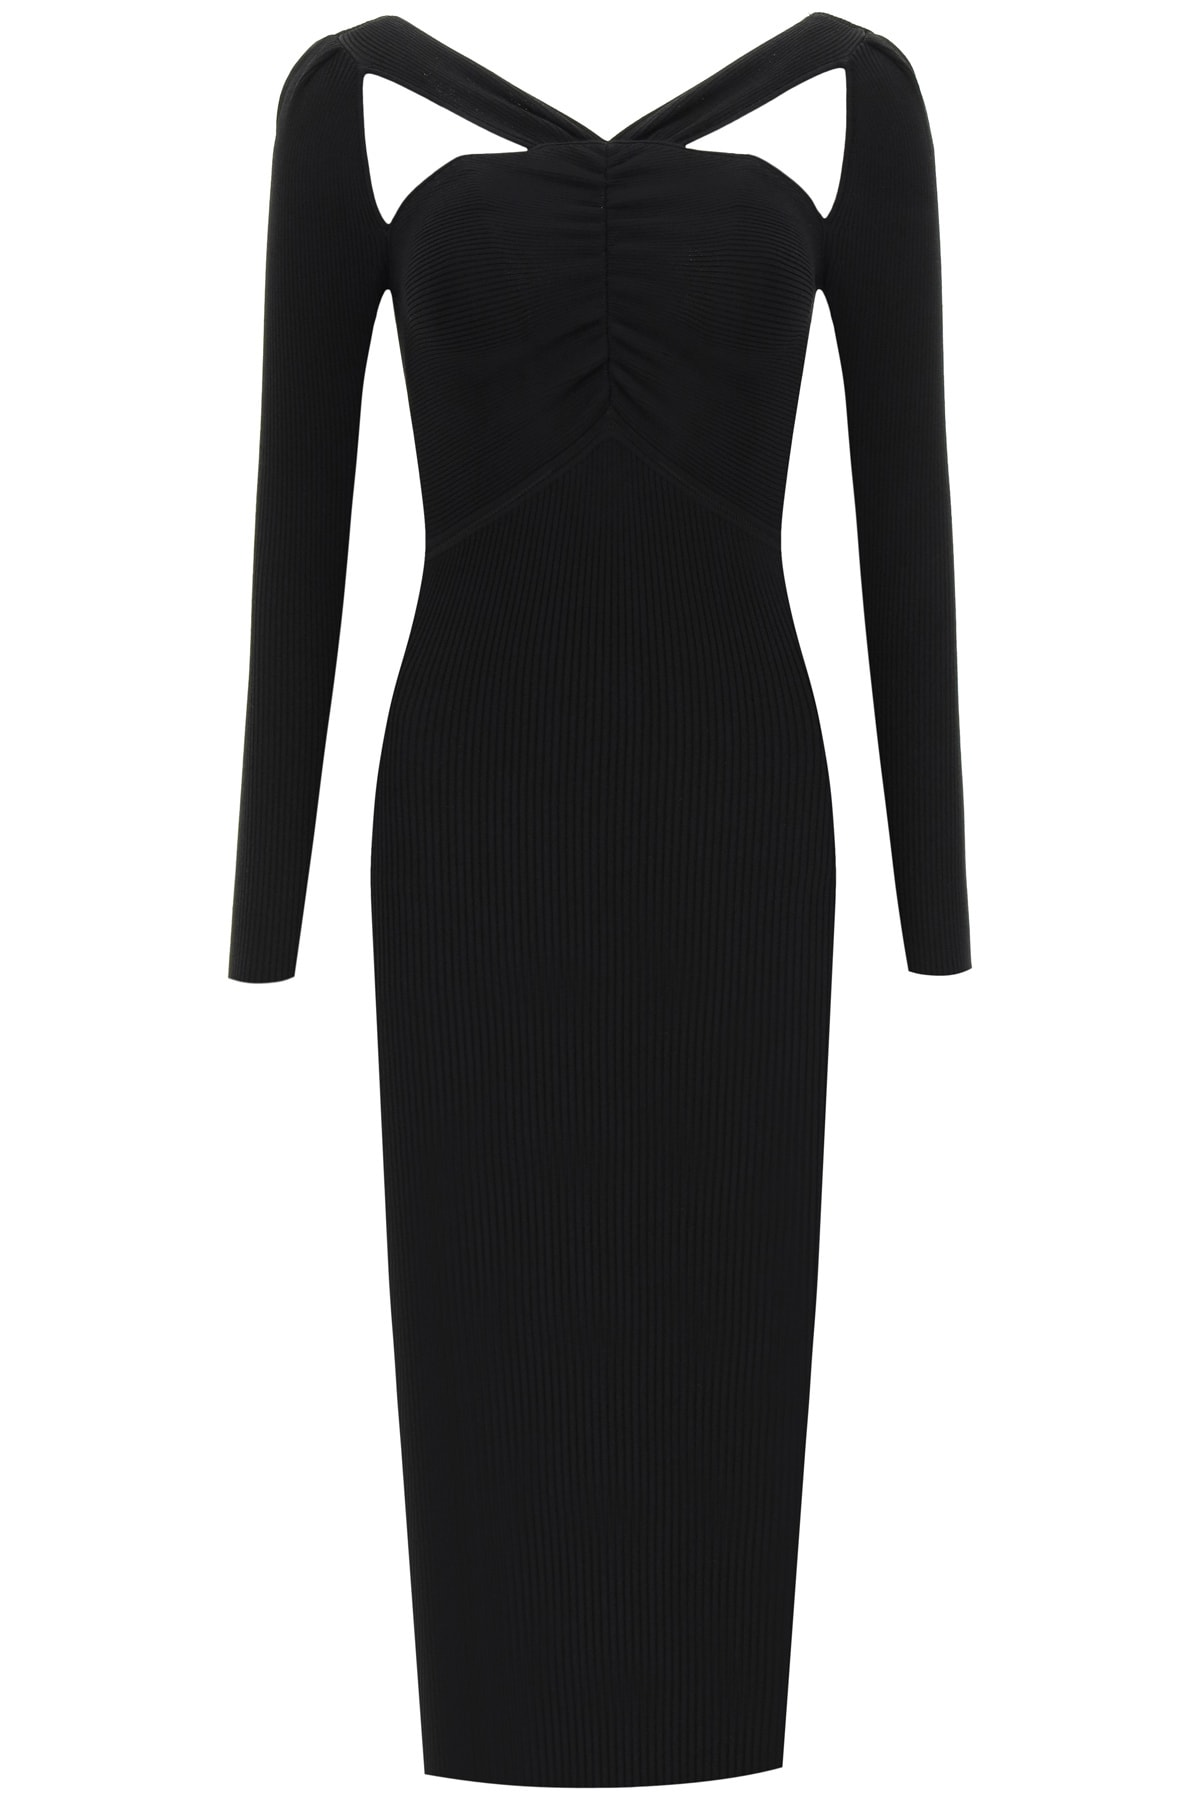 Buy self-portrait Knit Dress With Cut-out online, shop self-portrait with free shipping